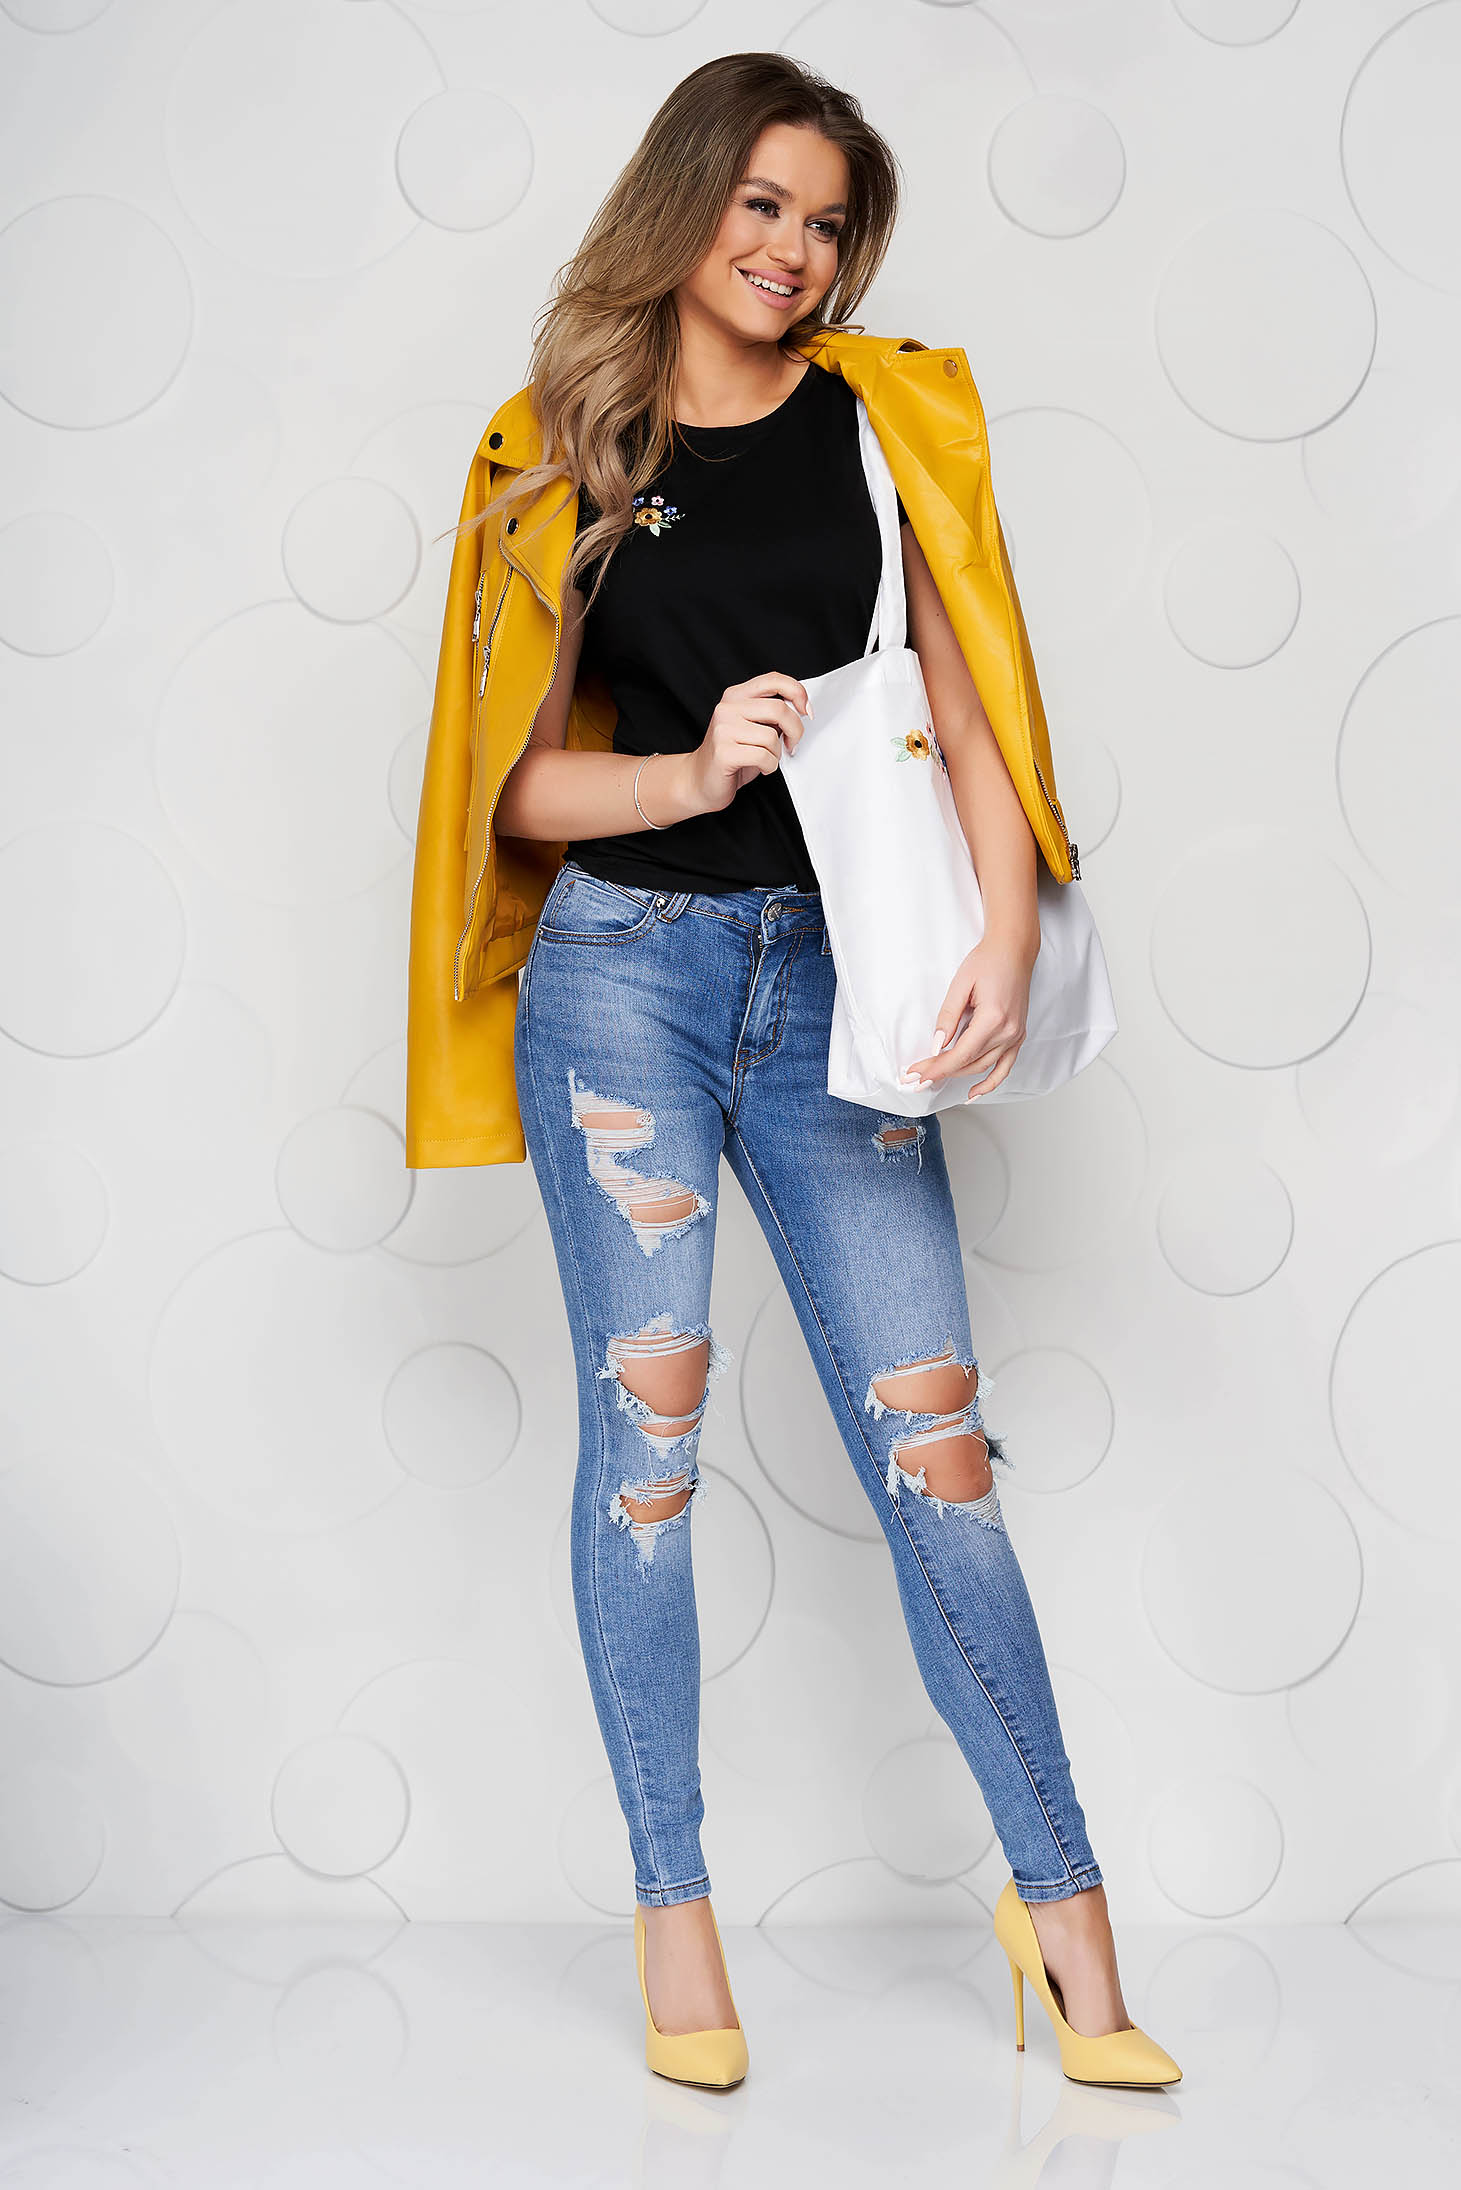 Blue jeans casual skinny jeans high waisted with ruptures